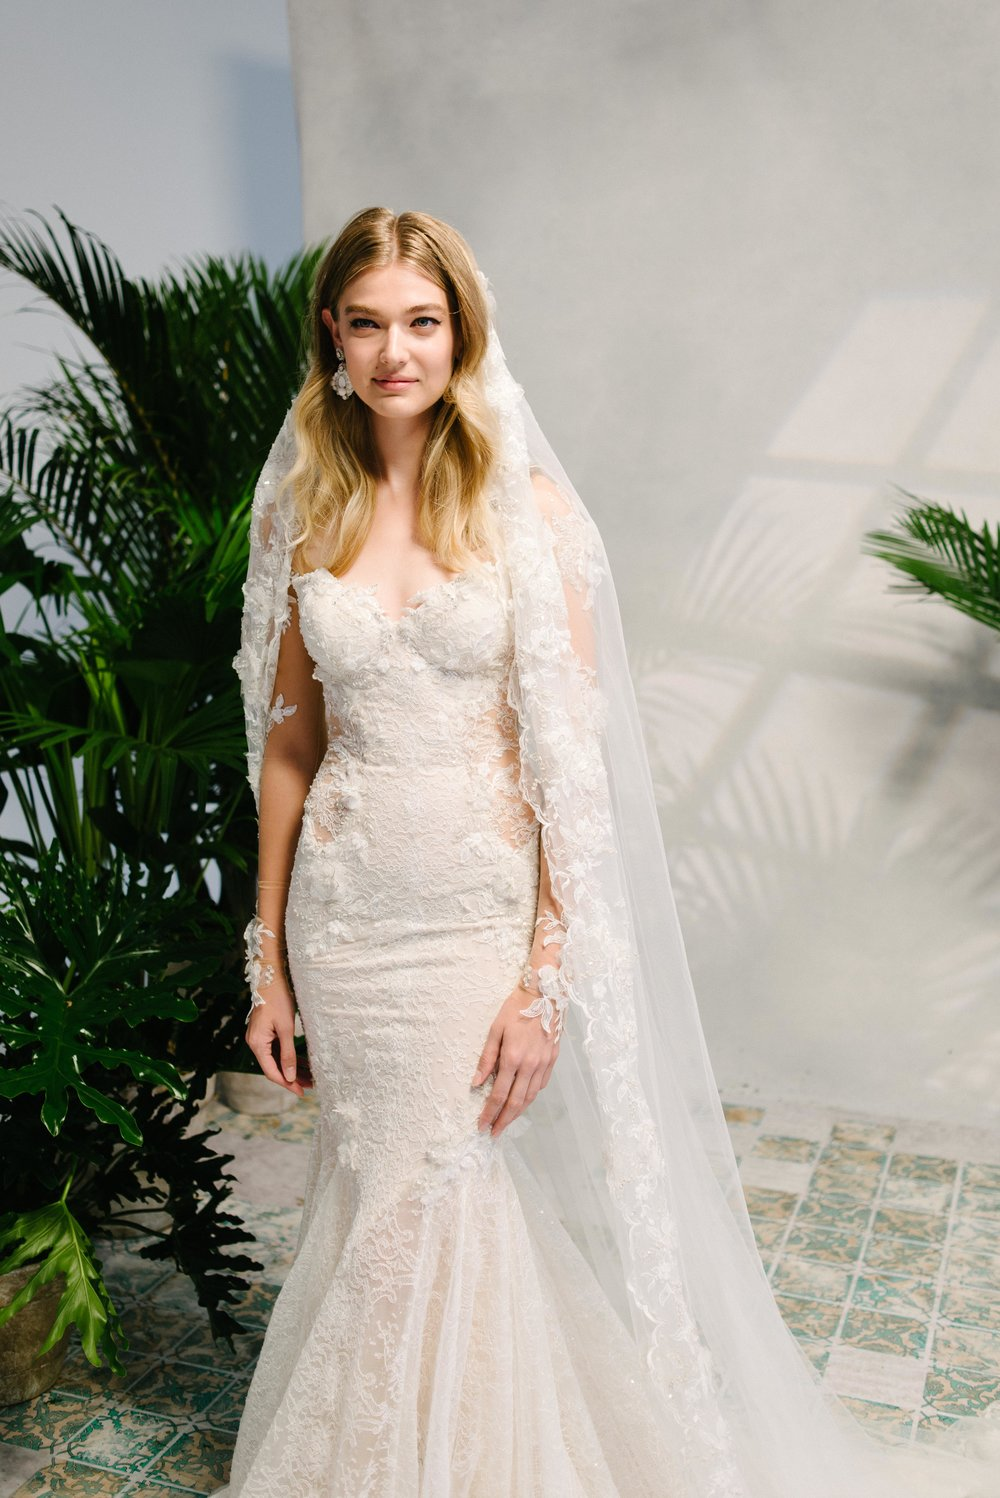 Bridal Fashion Week Trends 2019, New York Bridal Fashion Week, Bridal Market, Statement Veils